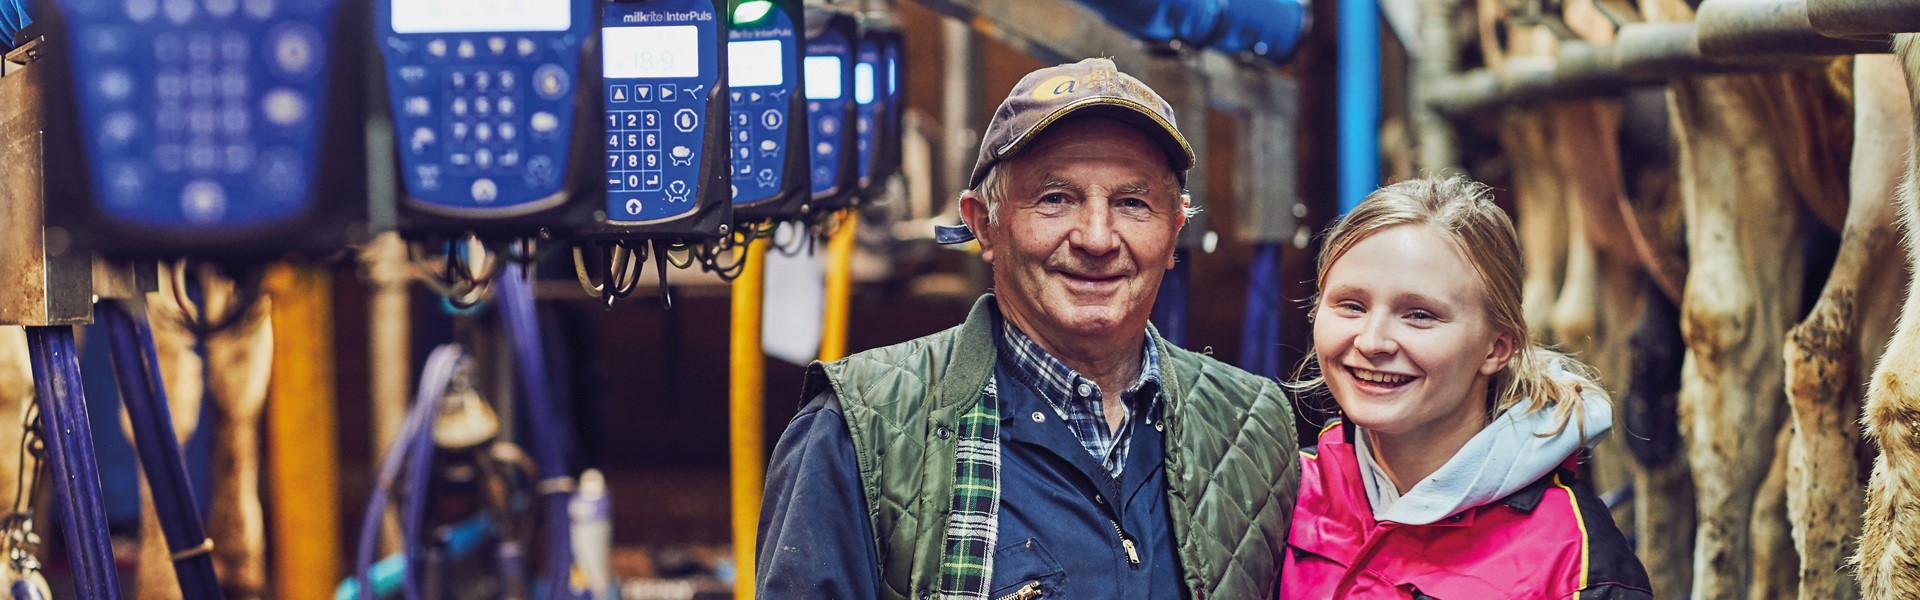 Happy Farmers next to iMilk600 Electronic Milk Meters